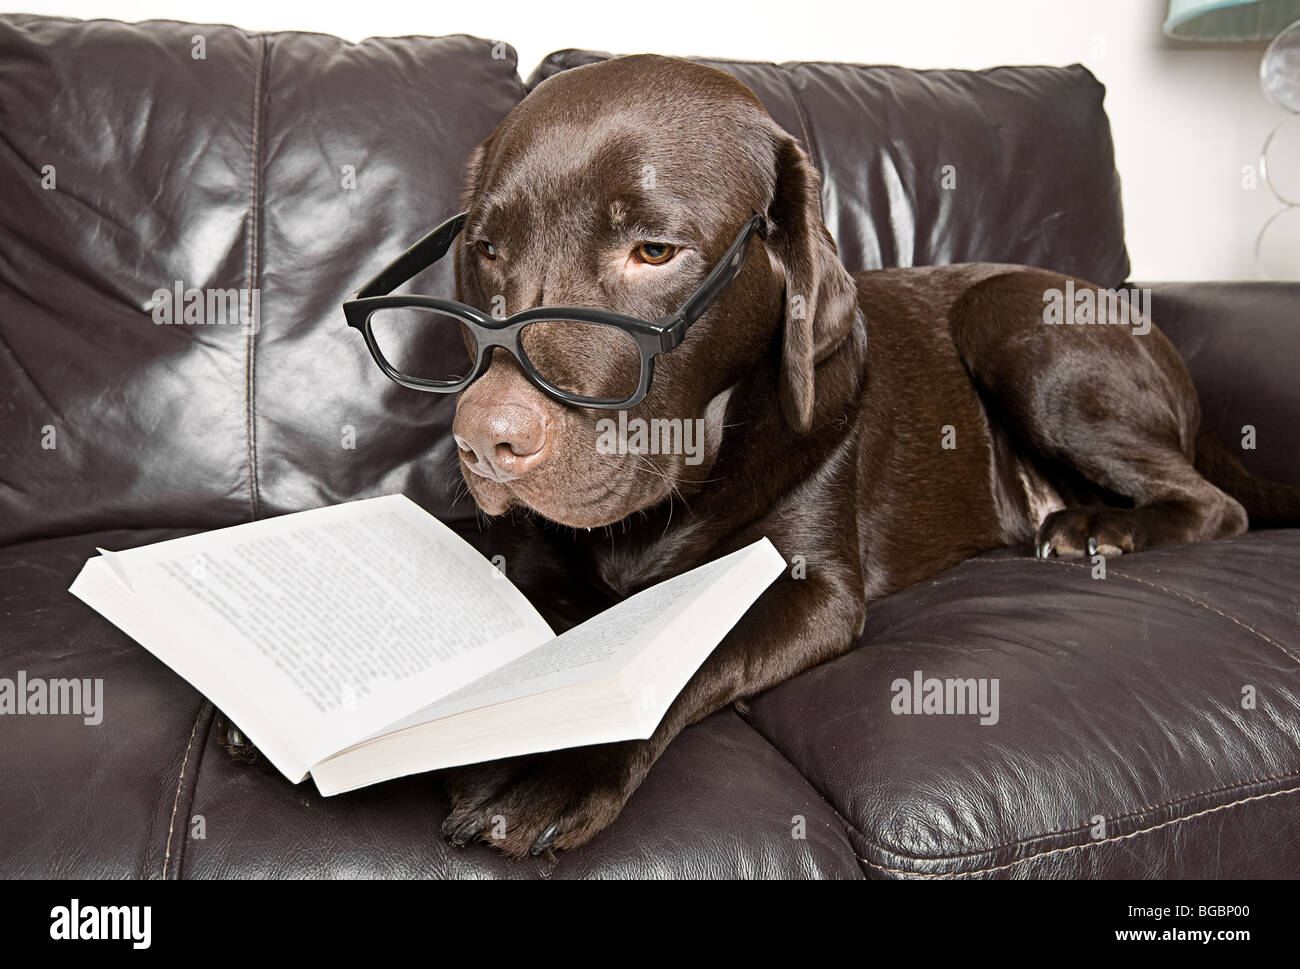 Funny Shot of a Chocolate Labrador with a Good Book on the Sofa - Stock Image